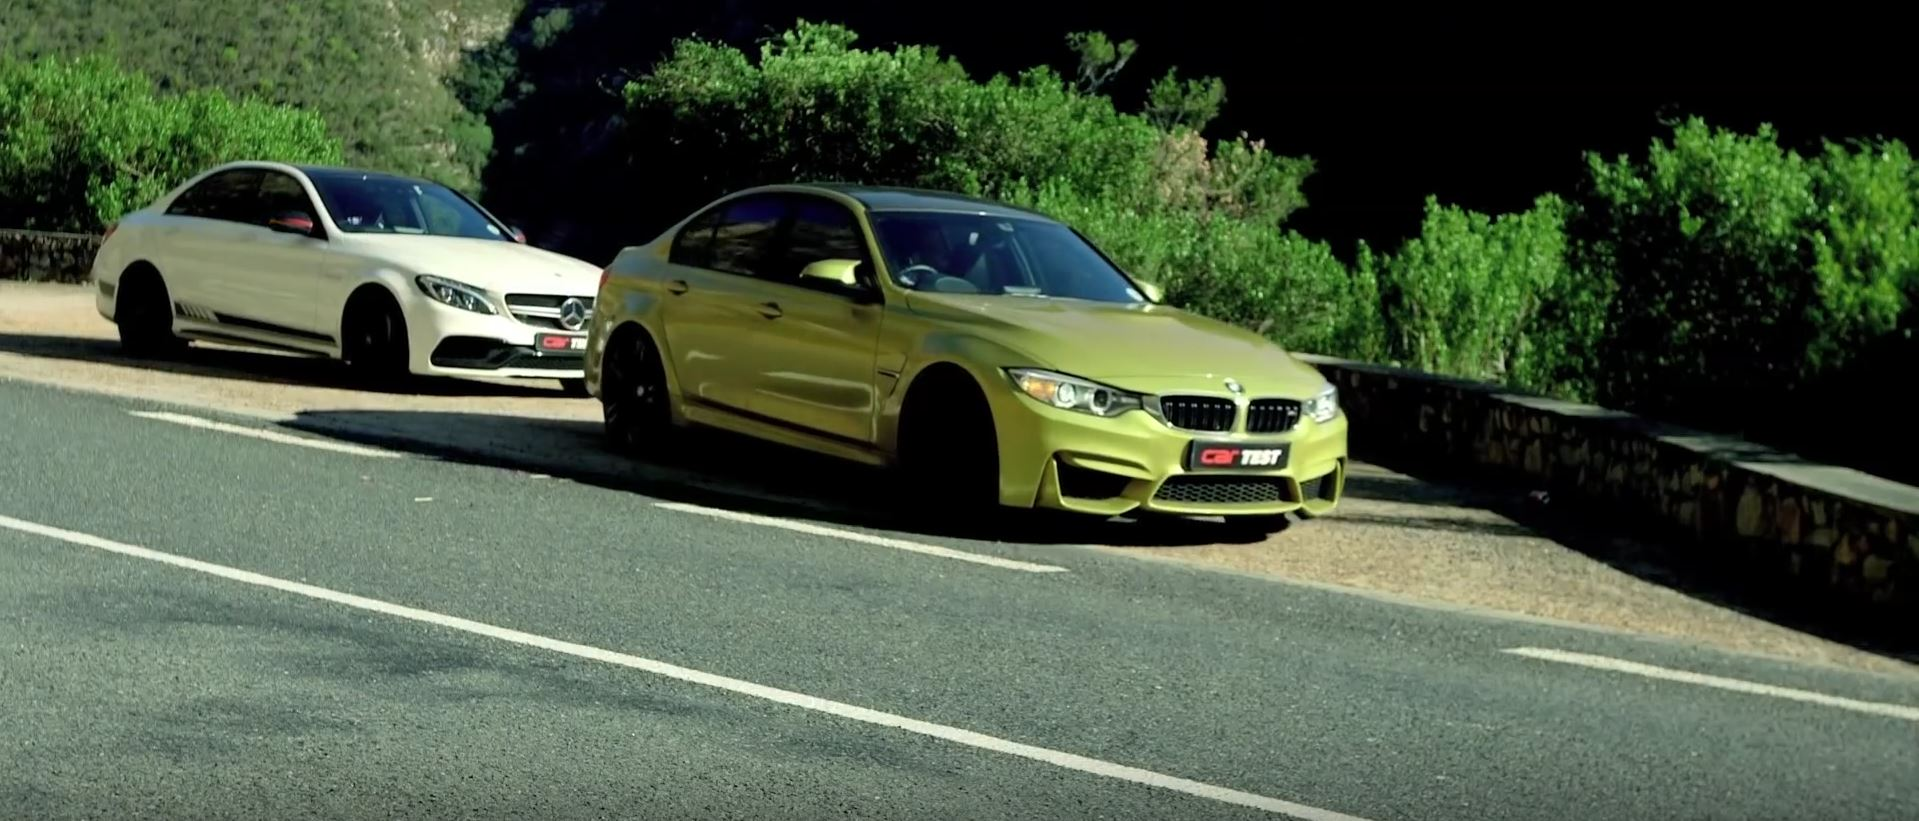 Another Review Finds the 2015 BMW M3 Better than the ...